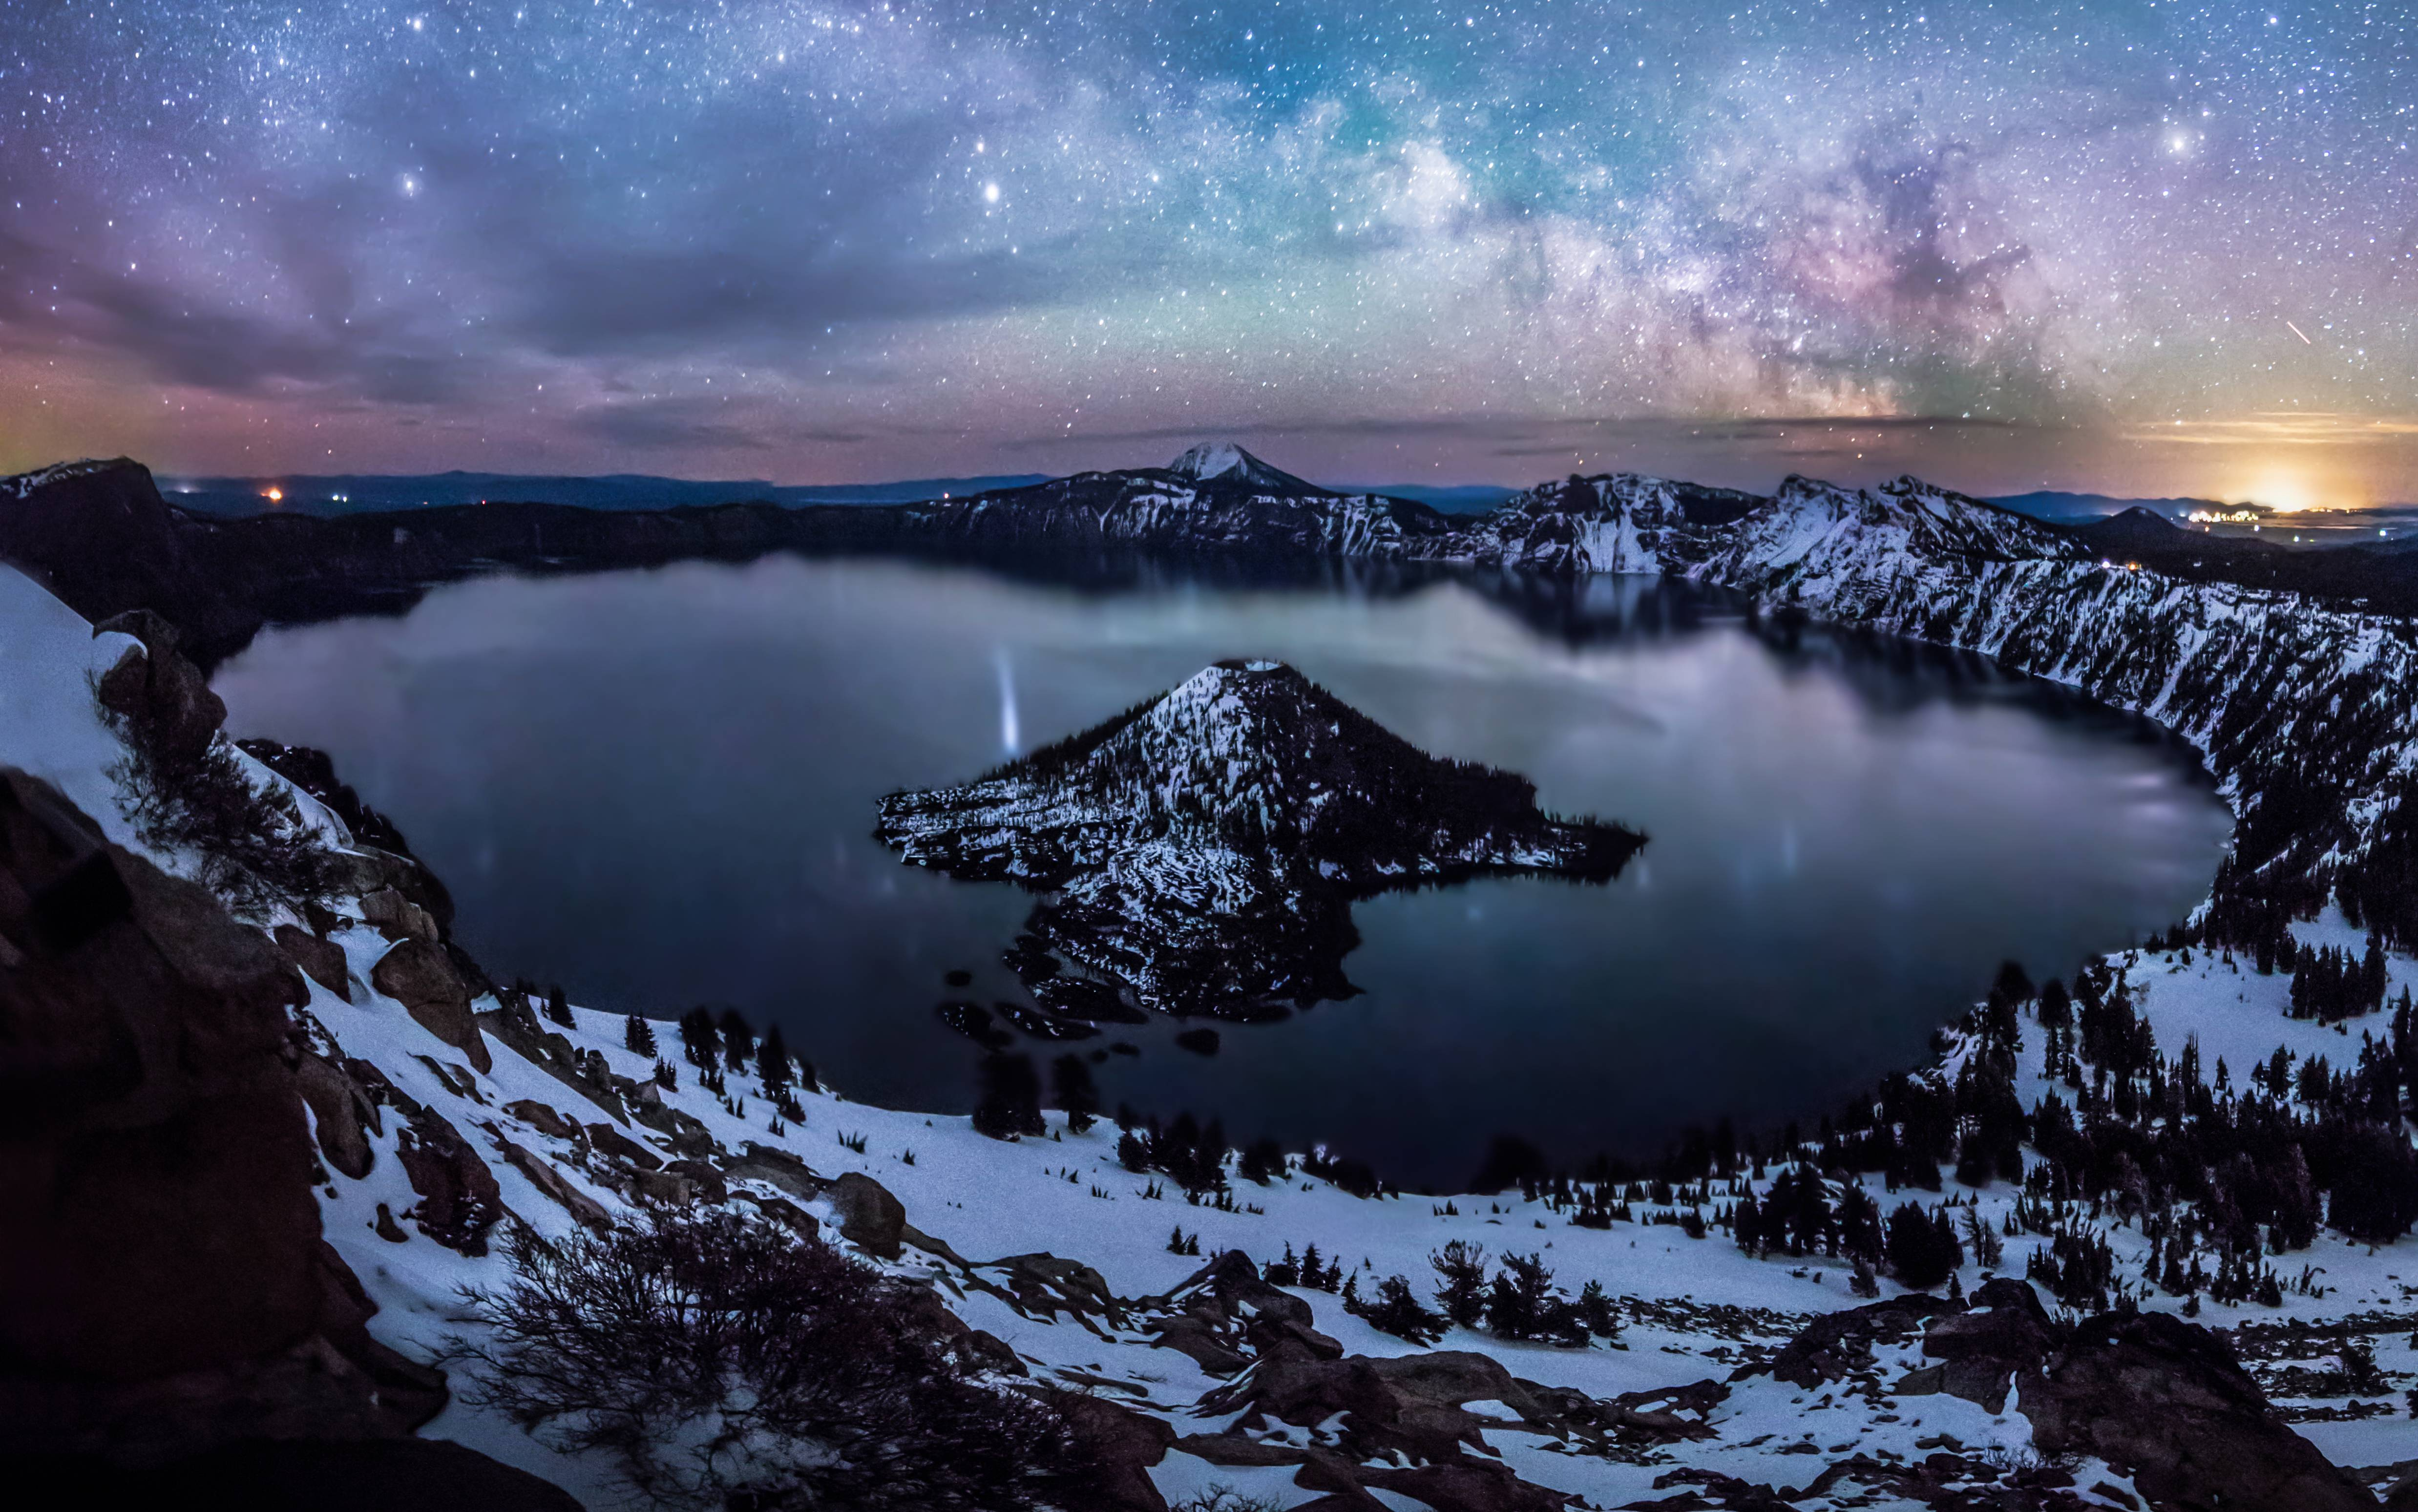 crater lake oregon us at night